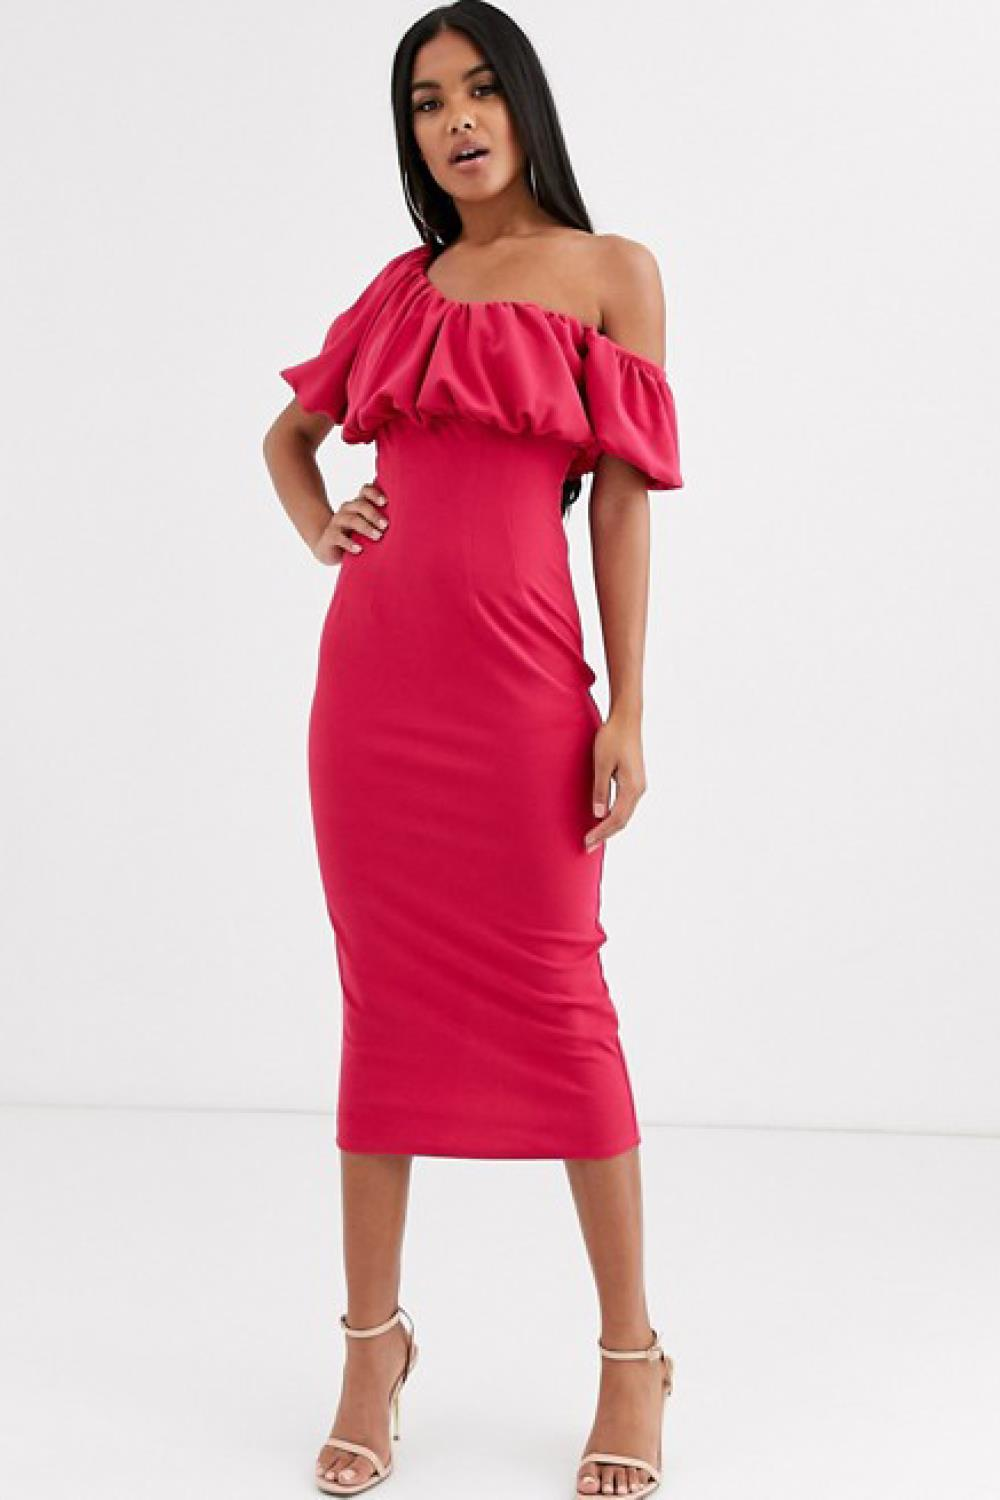 vestido invitada low cost asos 51,99€